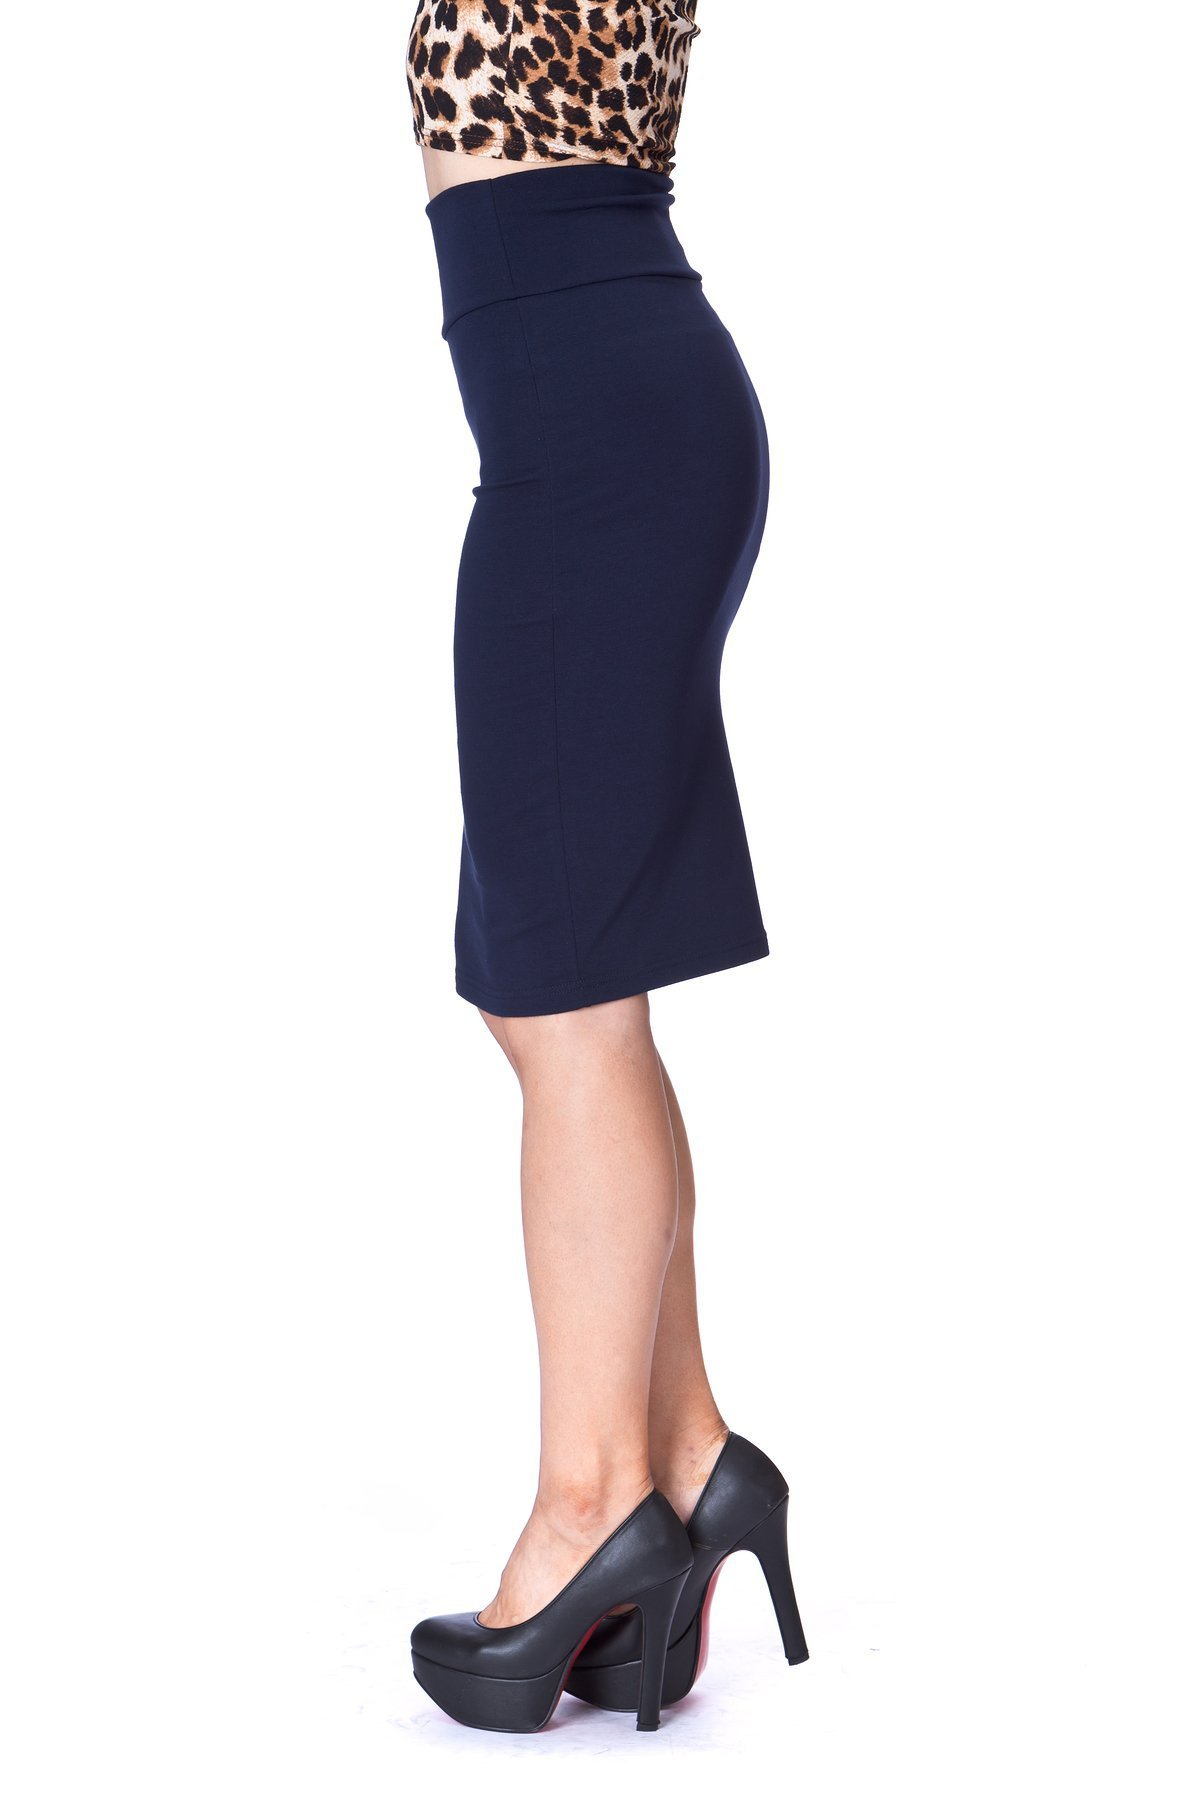 Every Occasion Stretch Pull on Wide High Waist Bodycon Pencil Knee Length Midi Skirt Navy 5 1